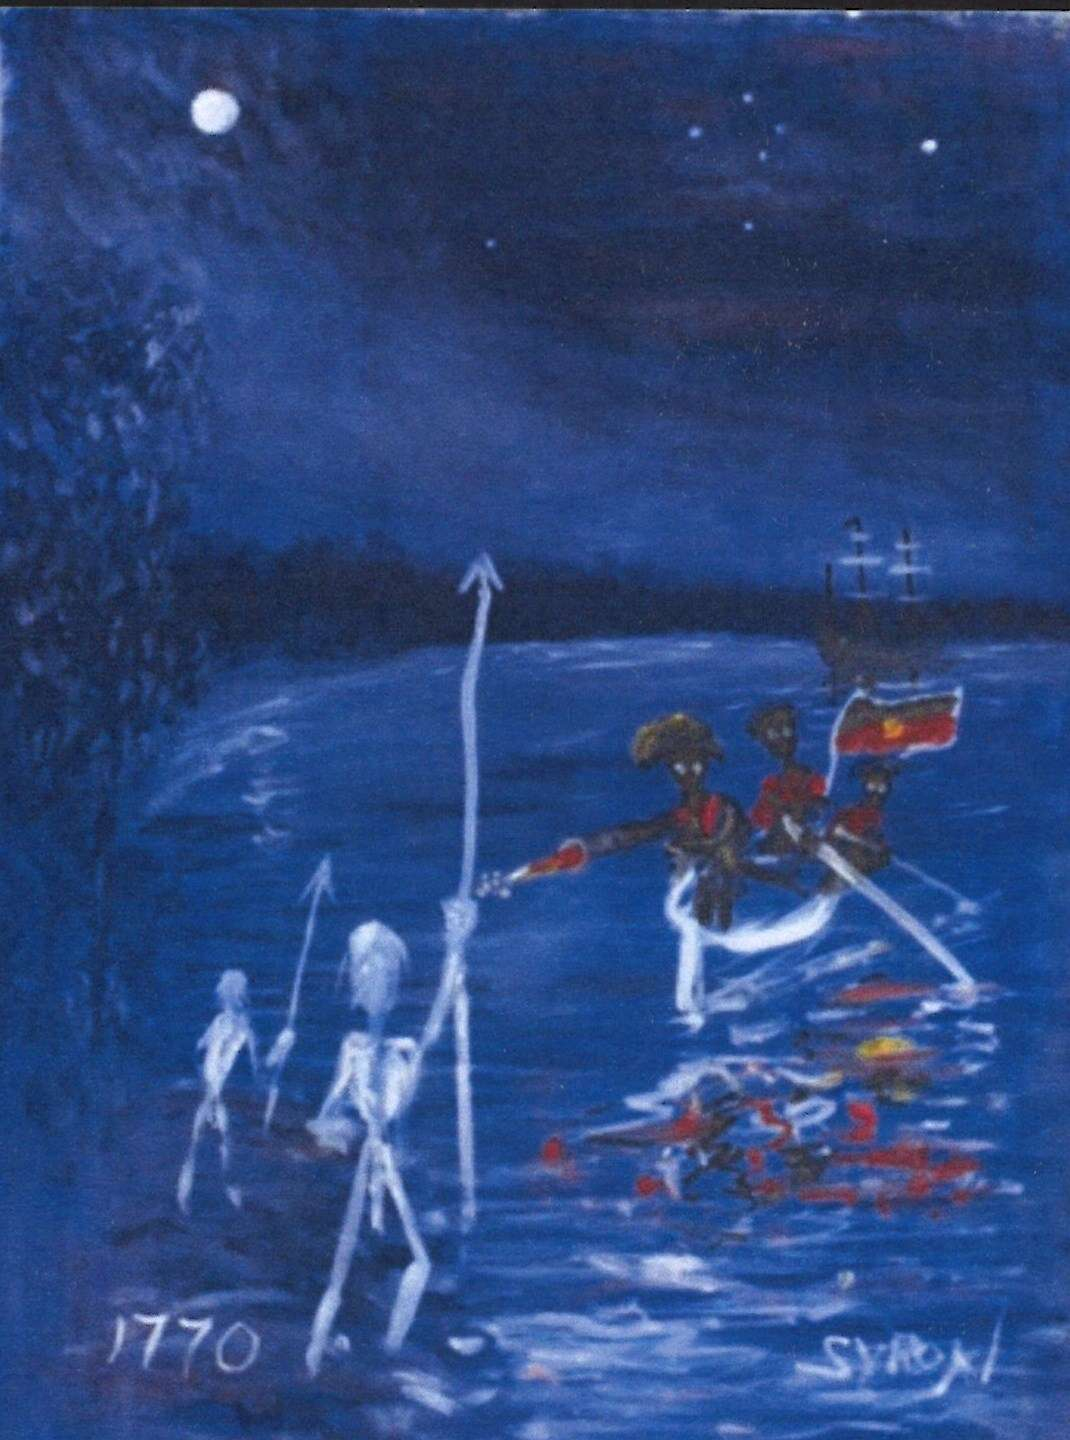 This 2013 painting by Indigenous artist Gordon Syron, titled 'Black bastards are coming', reimagines the first arrival of Europeans on the east coast of Australia by juxtaposing Aboriginal warriors with British military. This role reversal has been a common thread in Indigenous art and other cultural production – asking the question 'how would you feel if it was you who were invaded?'. ANMM Collection